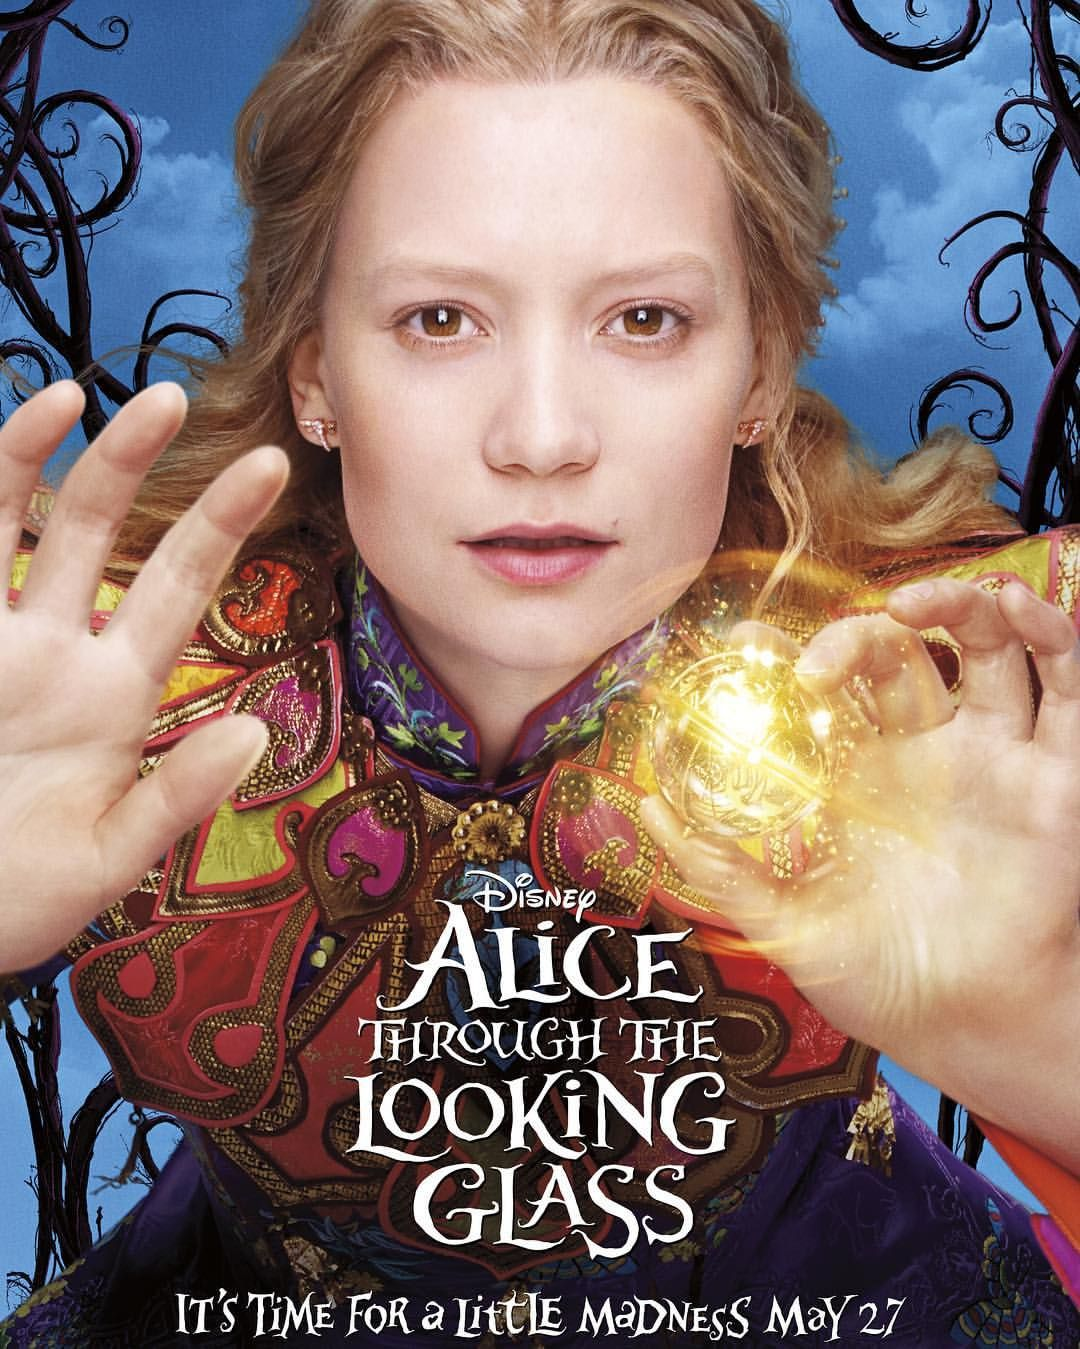 #DaylightSavings drives everyone a little bonkers.  Turn back the hands of time and go #ThroughTheLookingGlass May 27.